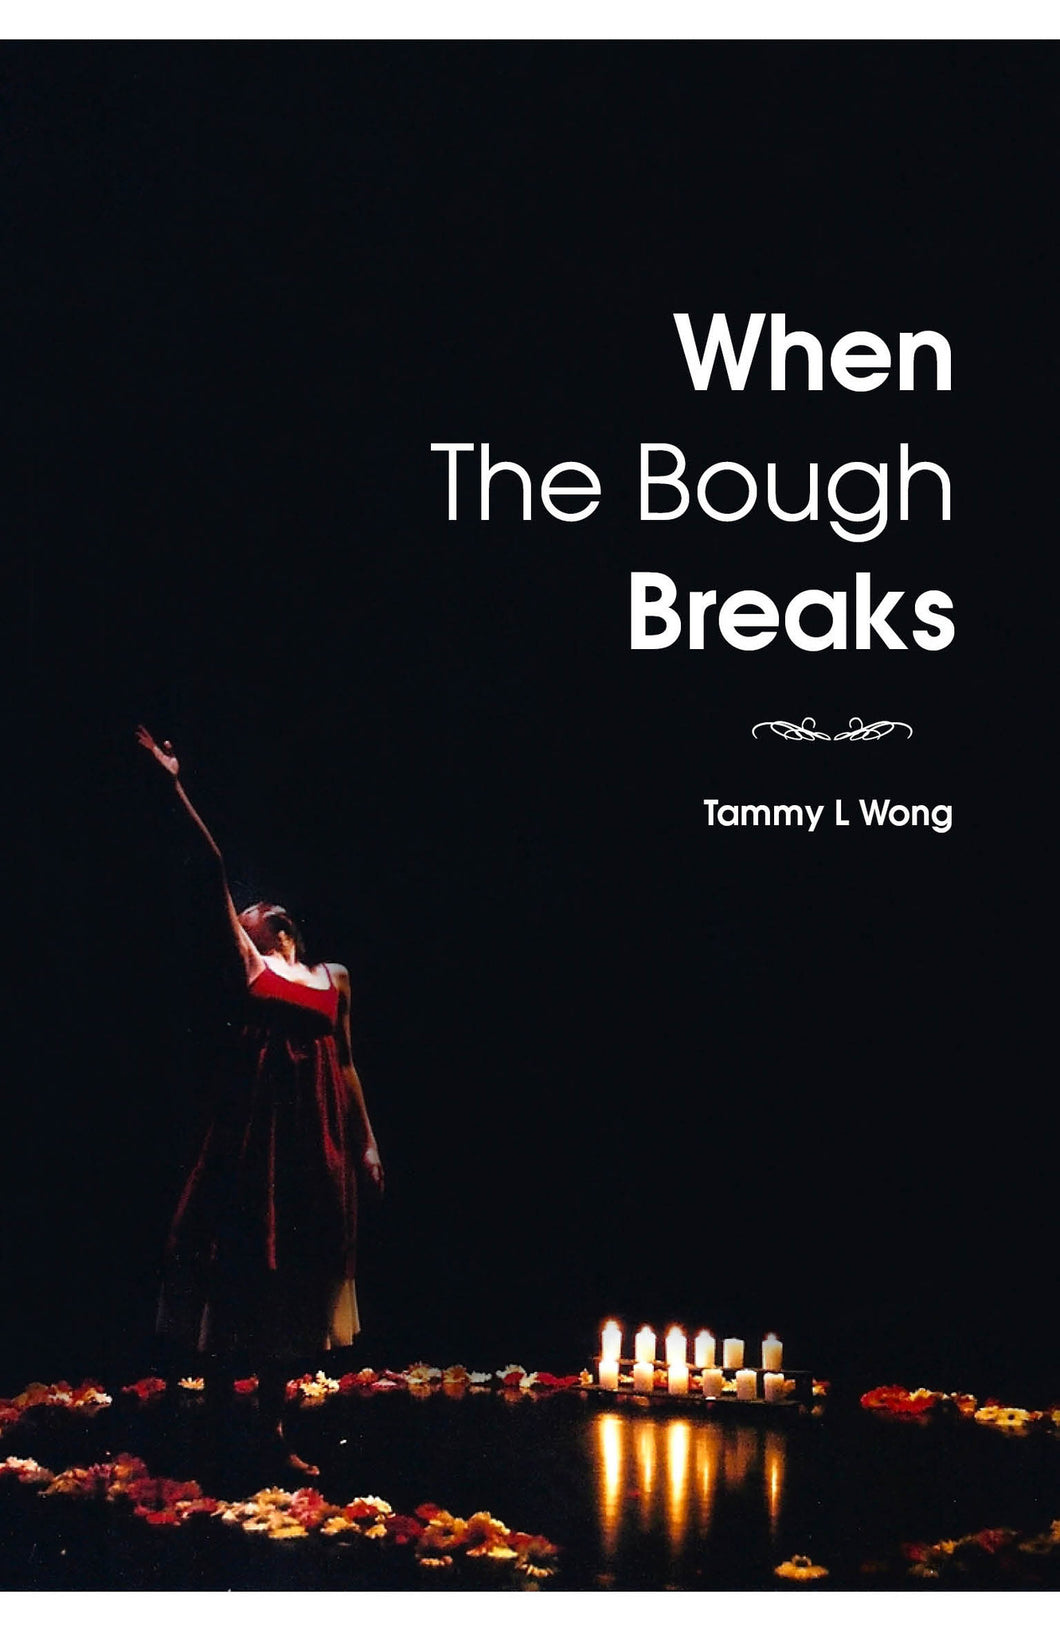 When The Bough Breaks - Ethos Books